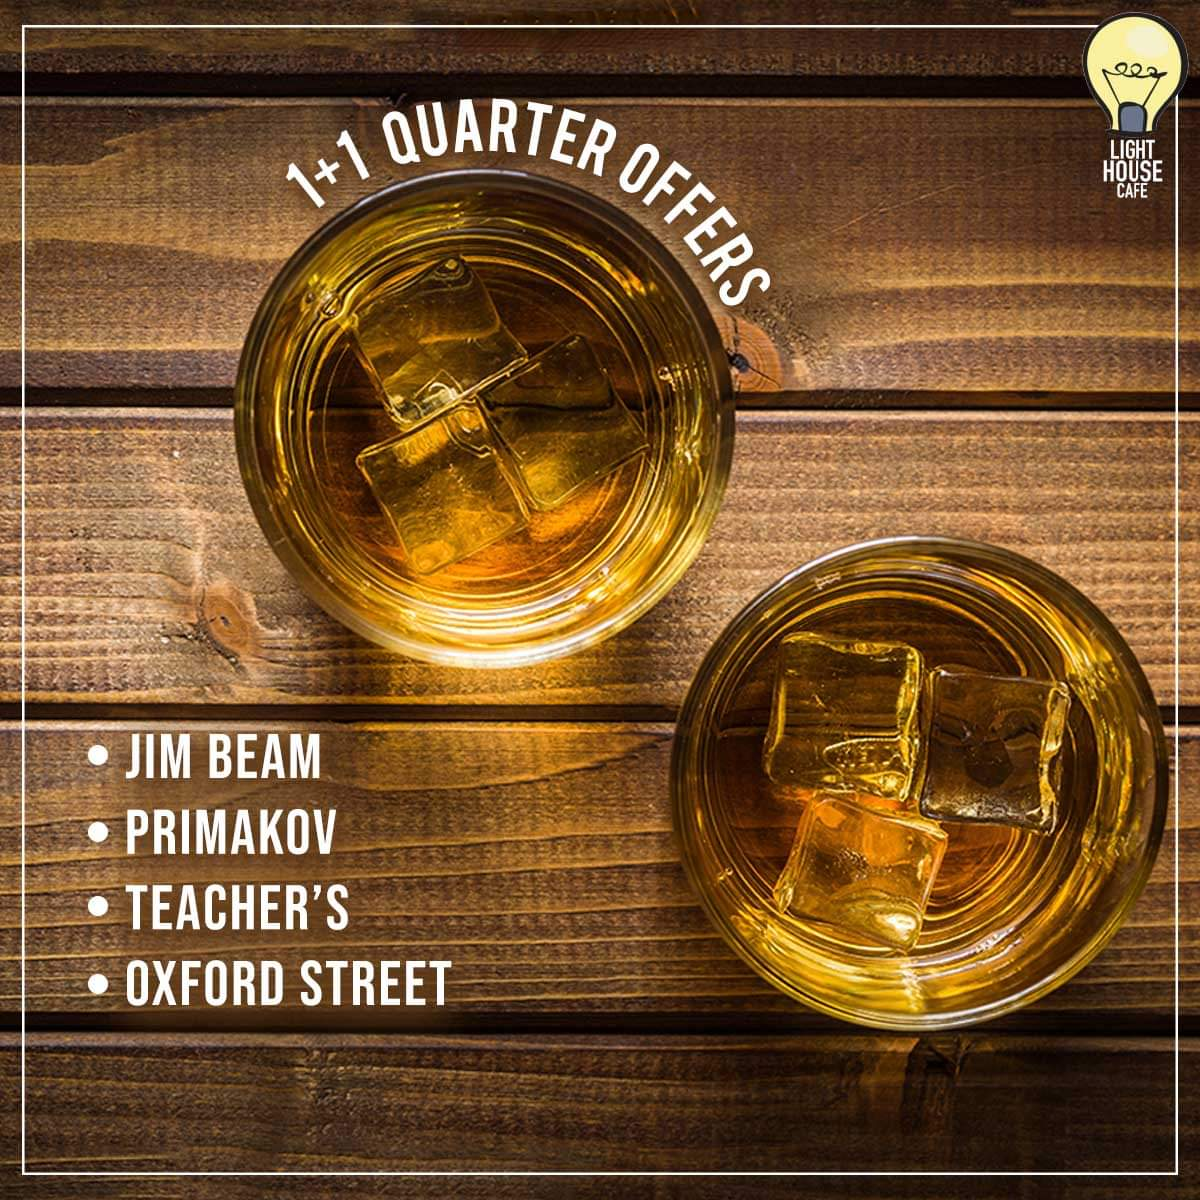 Unwind yourself with our 1 + 1 Quarter Offers and fill your Sunday with amazing stories only at Light House Cafe Mumbai  #LHC #Worli #Mumbai #Zomato #Blogpost #bloggers #Weekday #CurlyTales #Weekends #Thingstodo #Mumbaifoodie #Foodgasm #mumbaifood #indianblogger #dailyfoodfeed